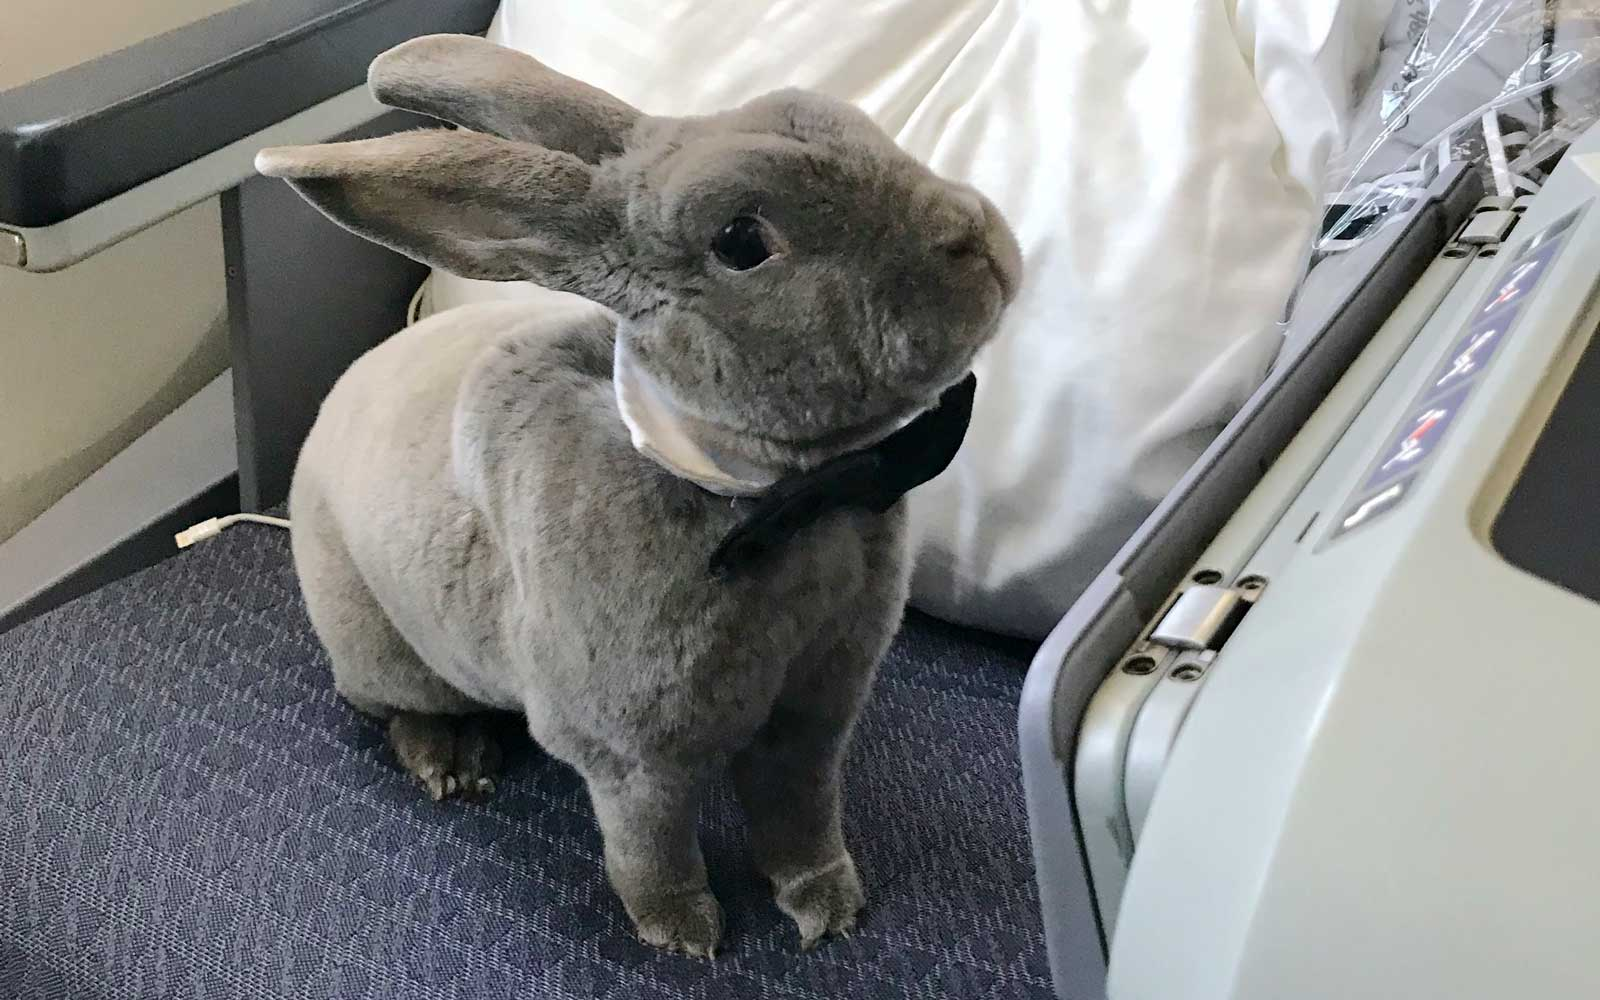 Coco, the business class bunny, wears a bowtie while enjoying the plane.